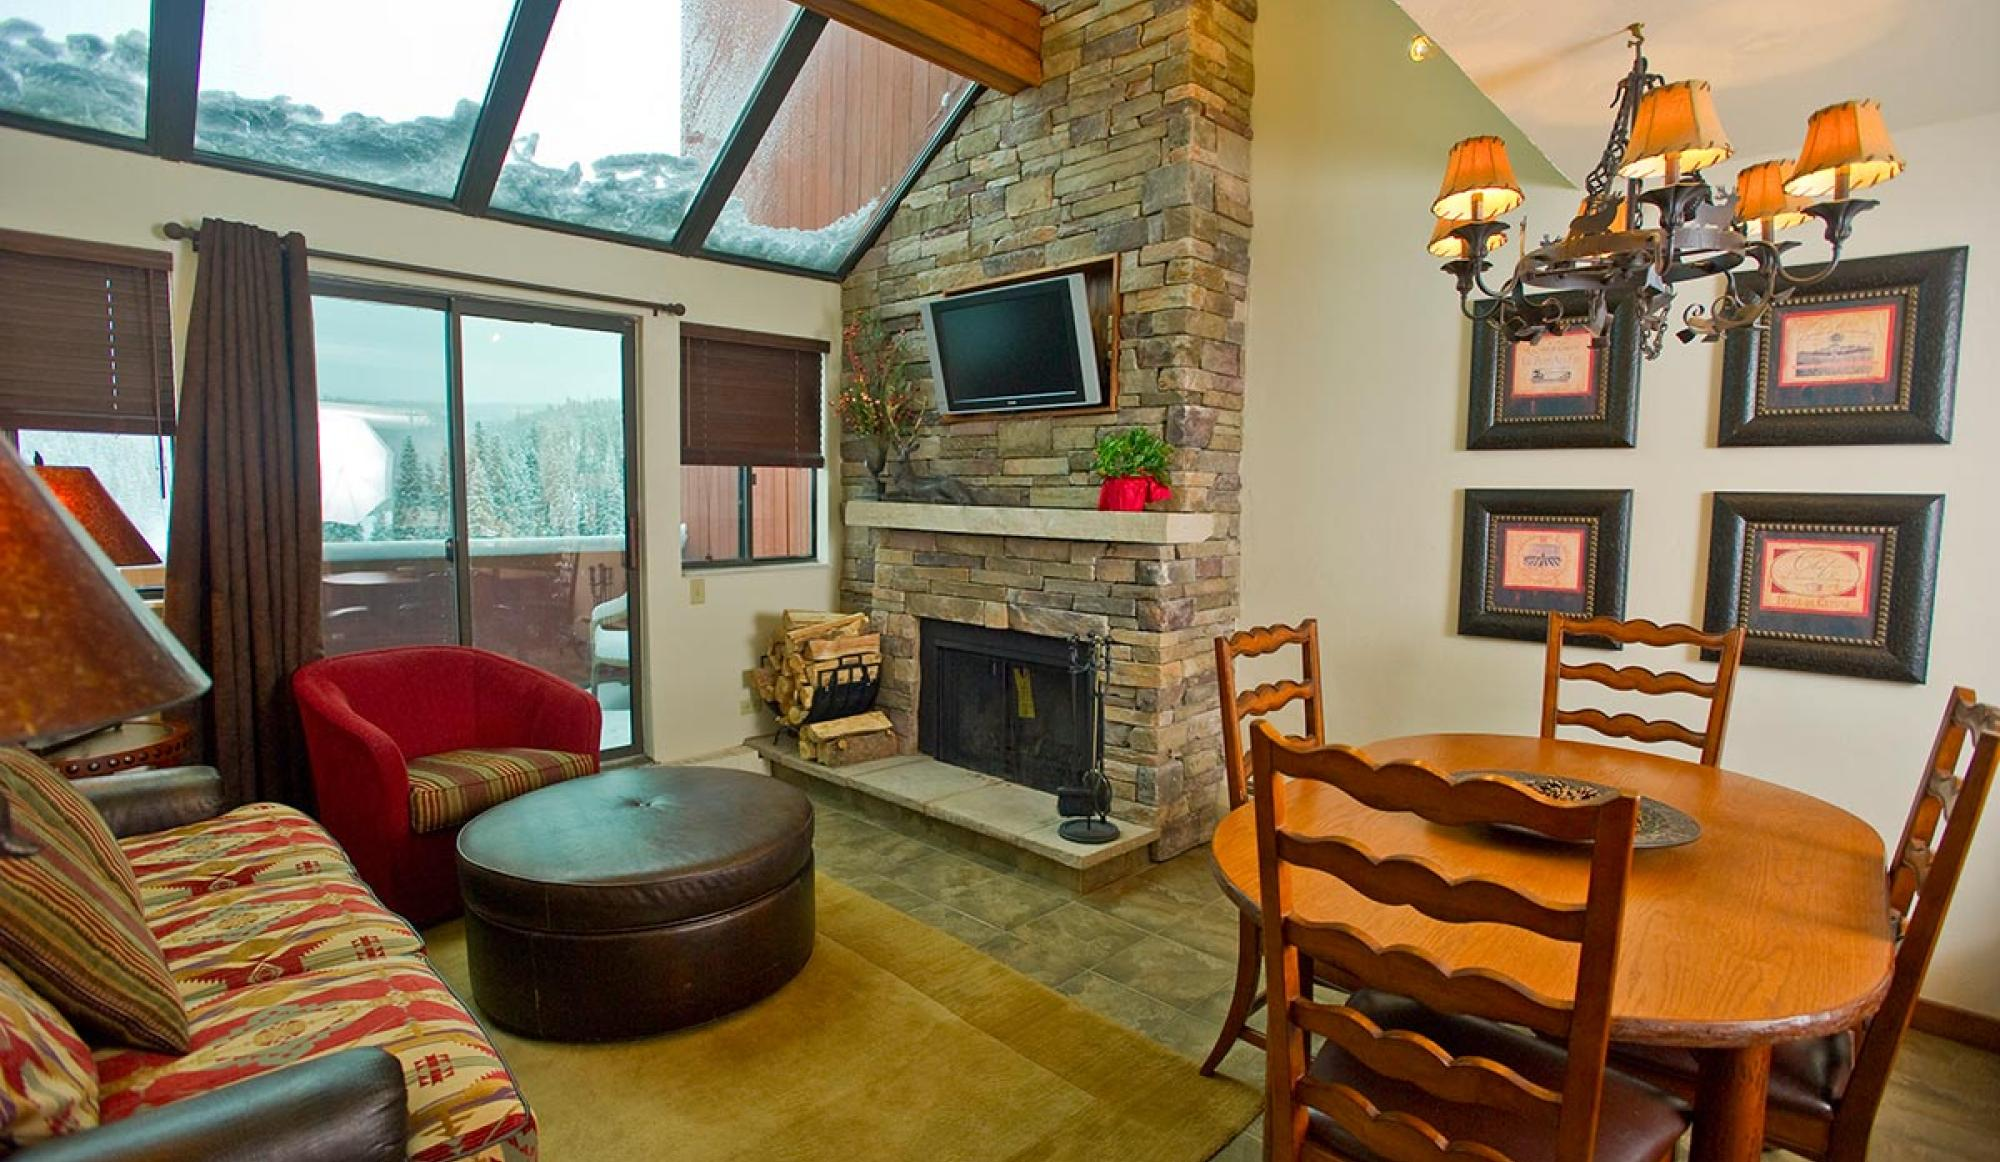 2 Bedroom Suite Living Area at Beaver Run Resort in Breckenridge